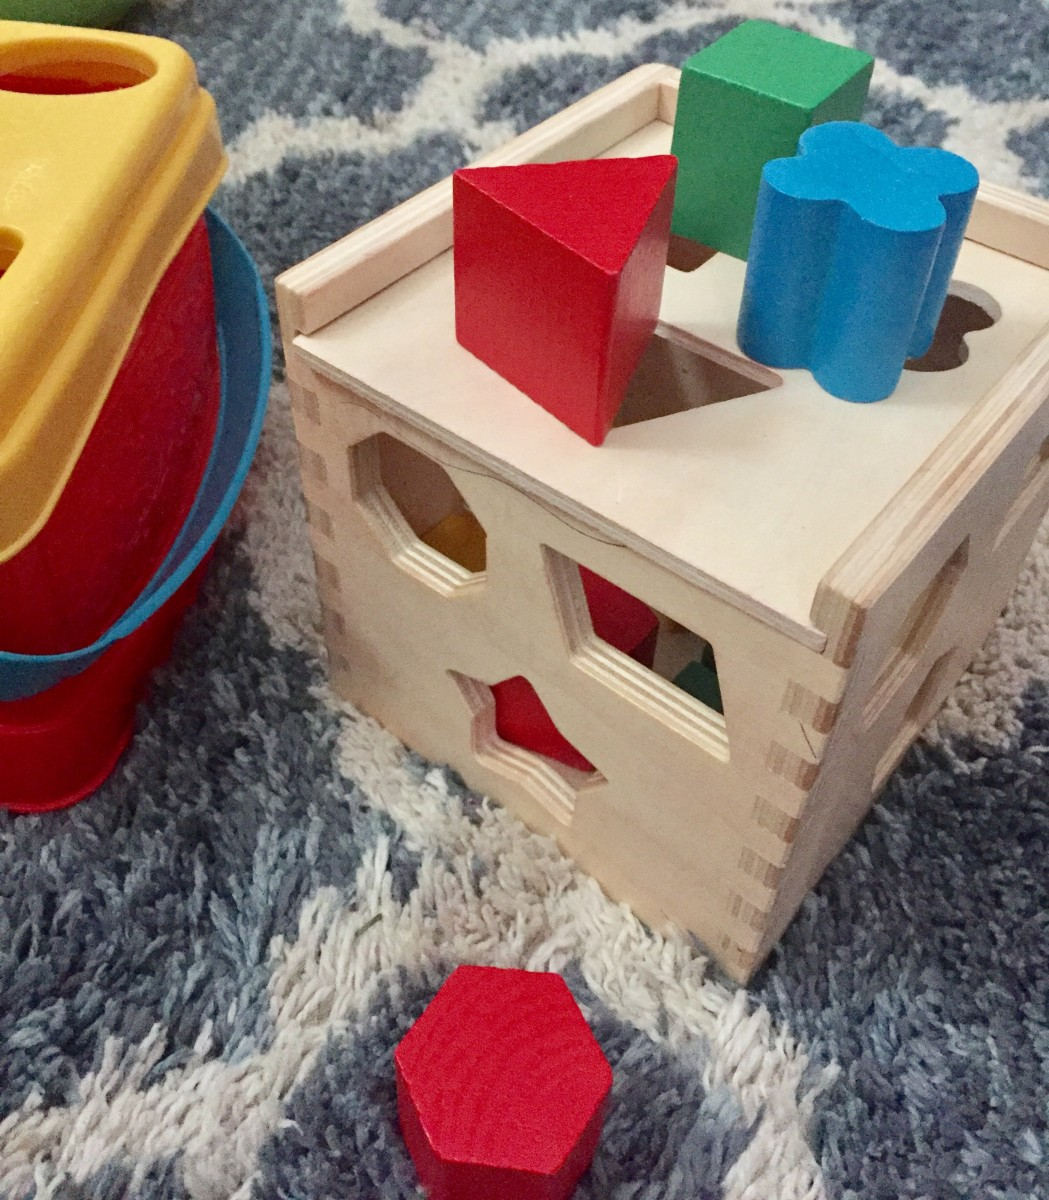 Shape Sorting Toys and Their Benefits